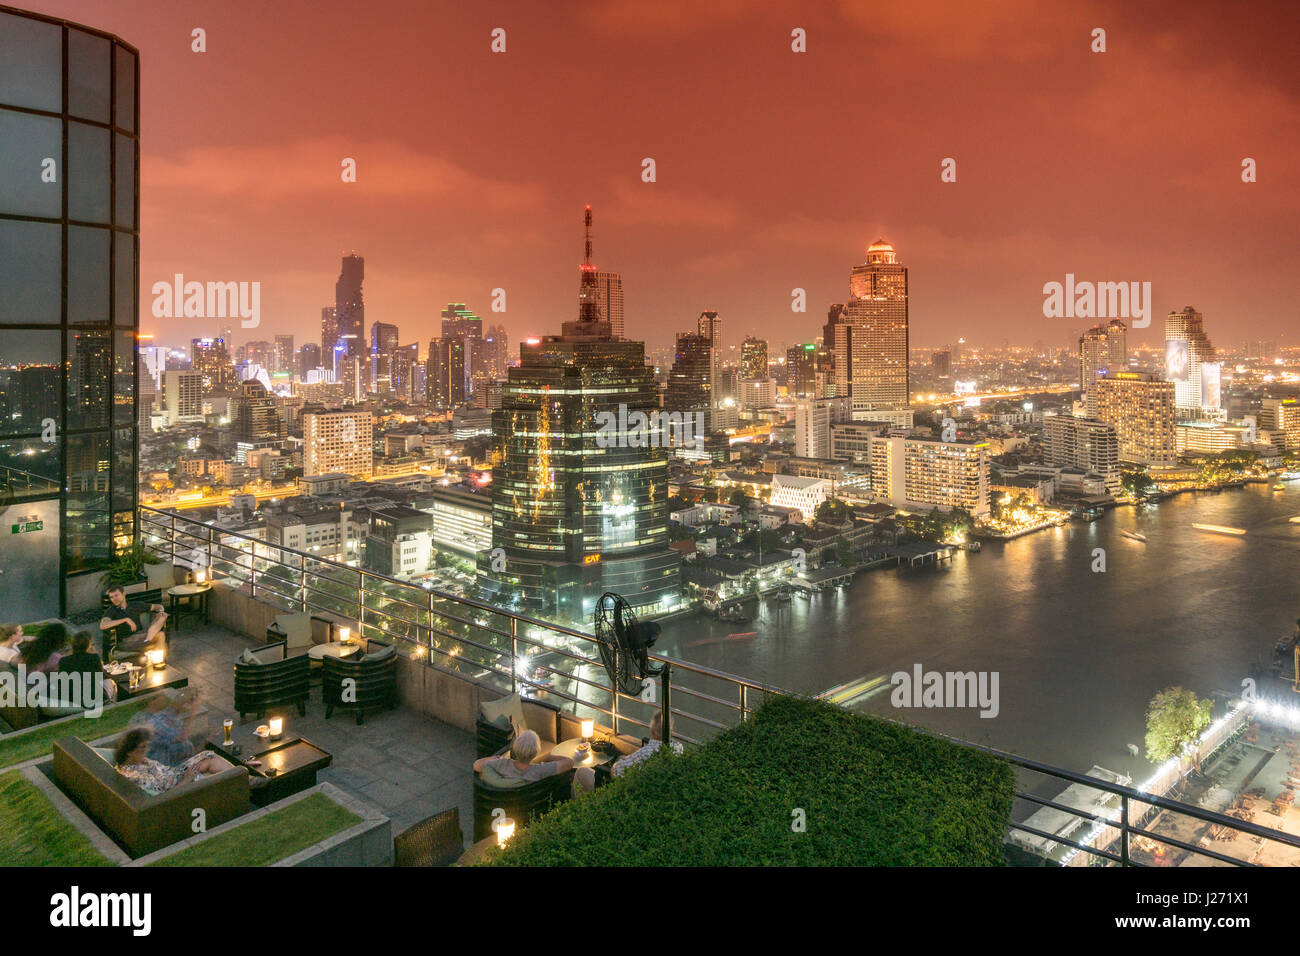 Millenium Hilton, 360 Rooftop Bar, skyline view point, Chao Praya River, CAT Telecom tower, State Lebua Tower,  - Stock Image